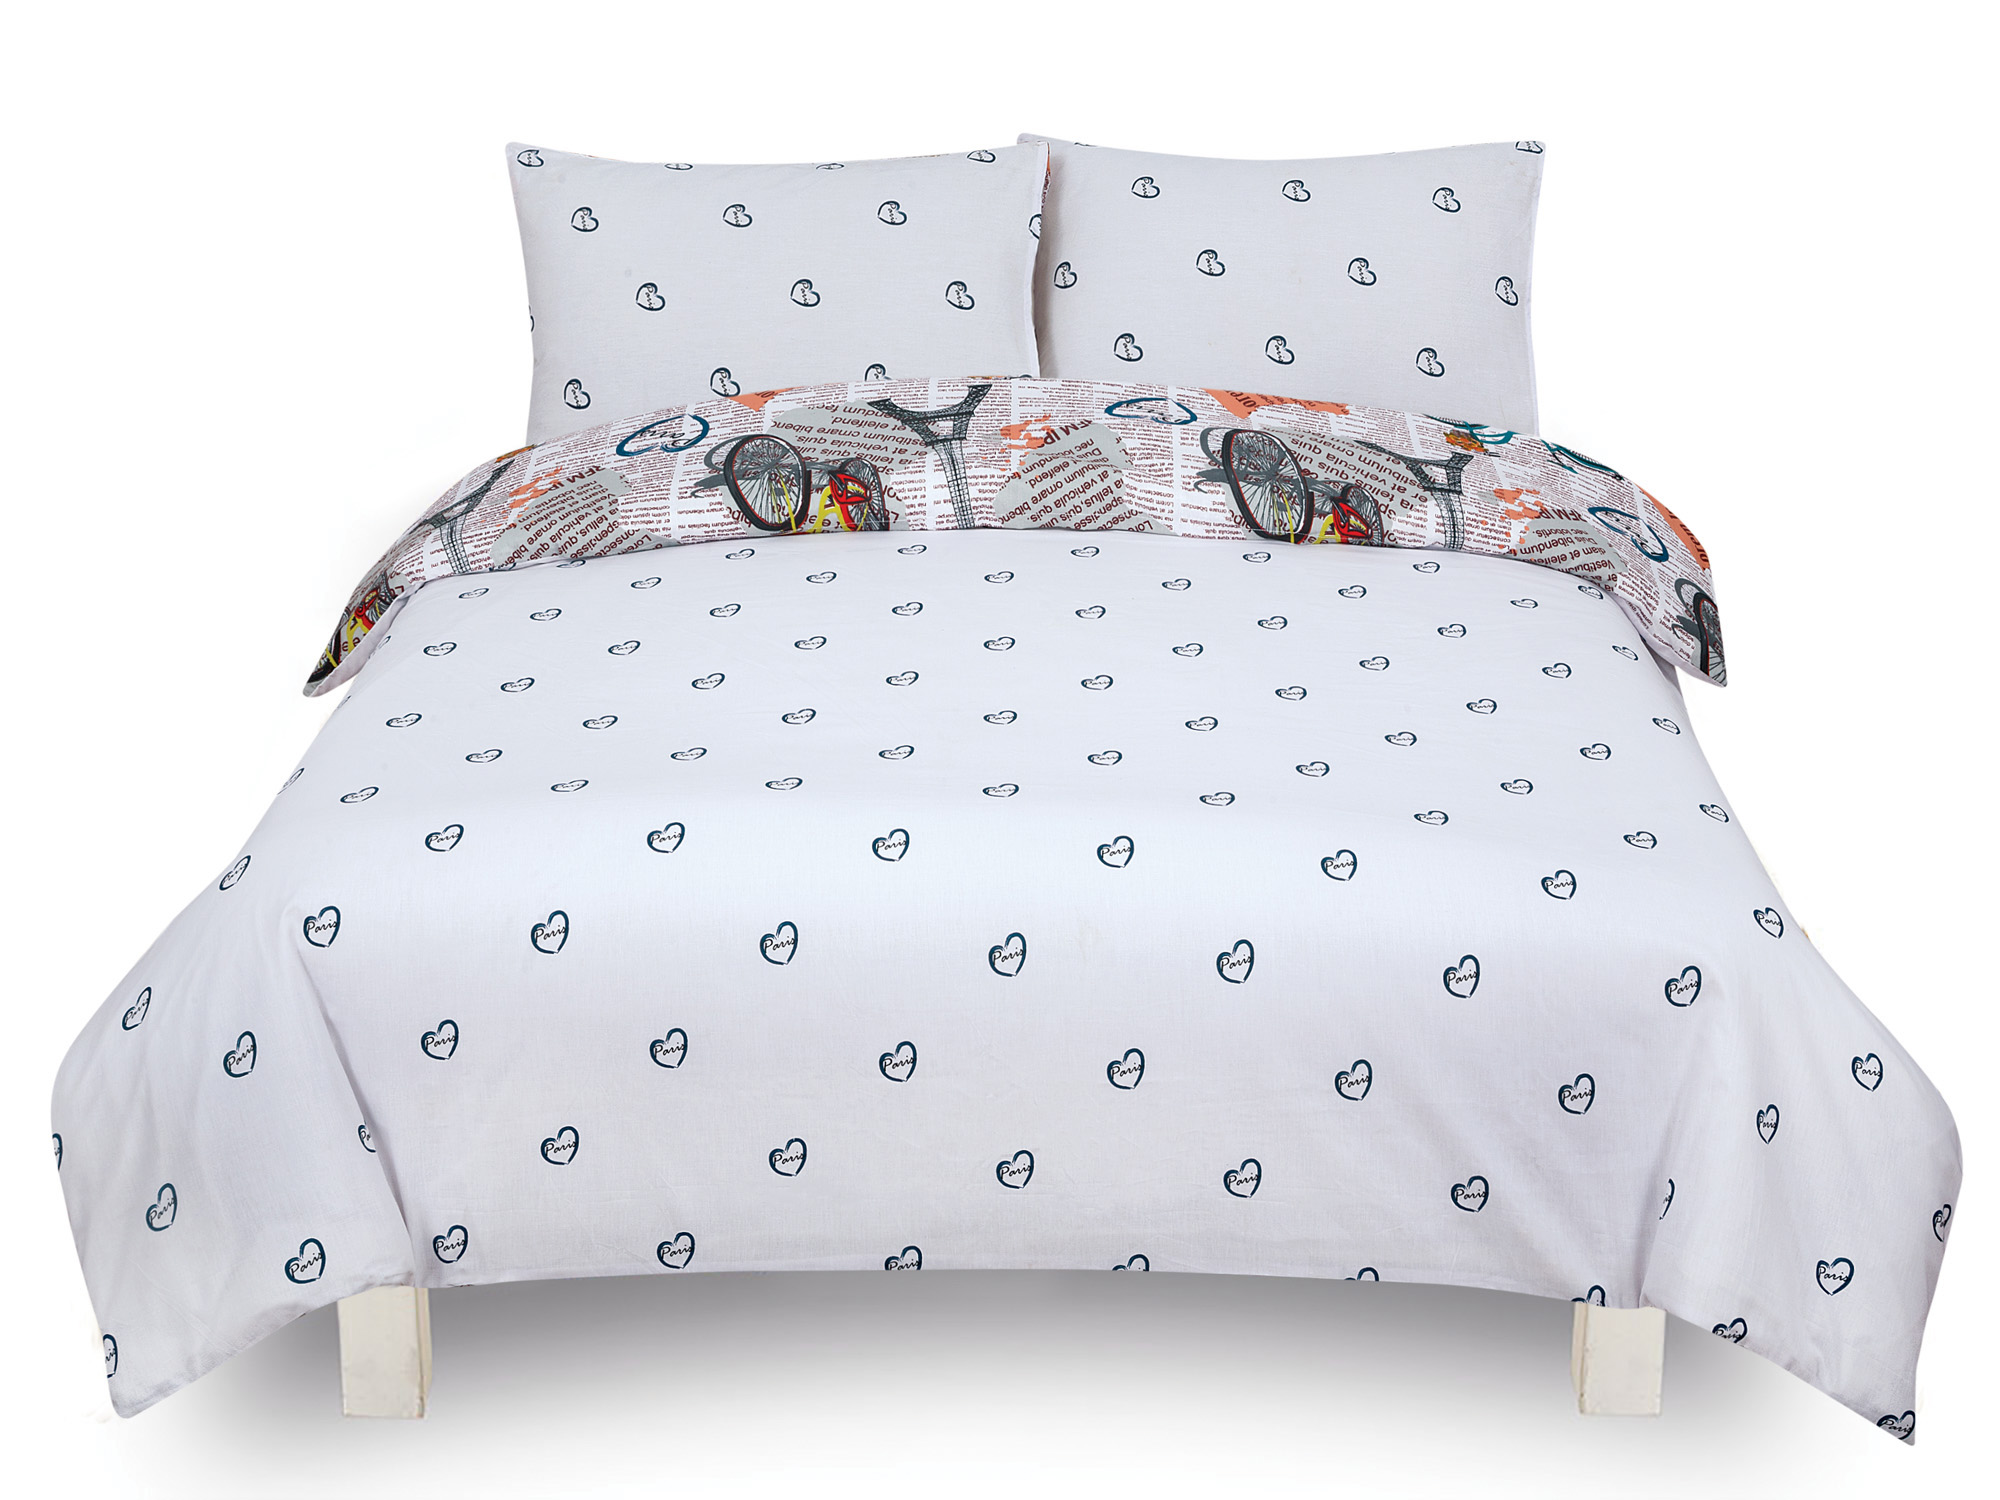 duvet cover with pillow case quilt cover bedding set in. Black Bedroom Furniture Sets. Home Design Ideas